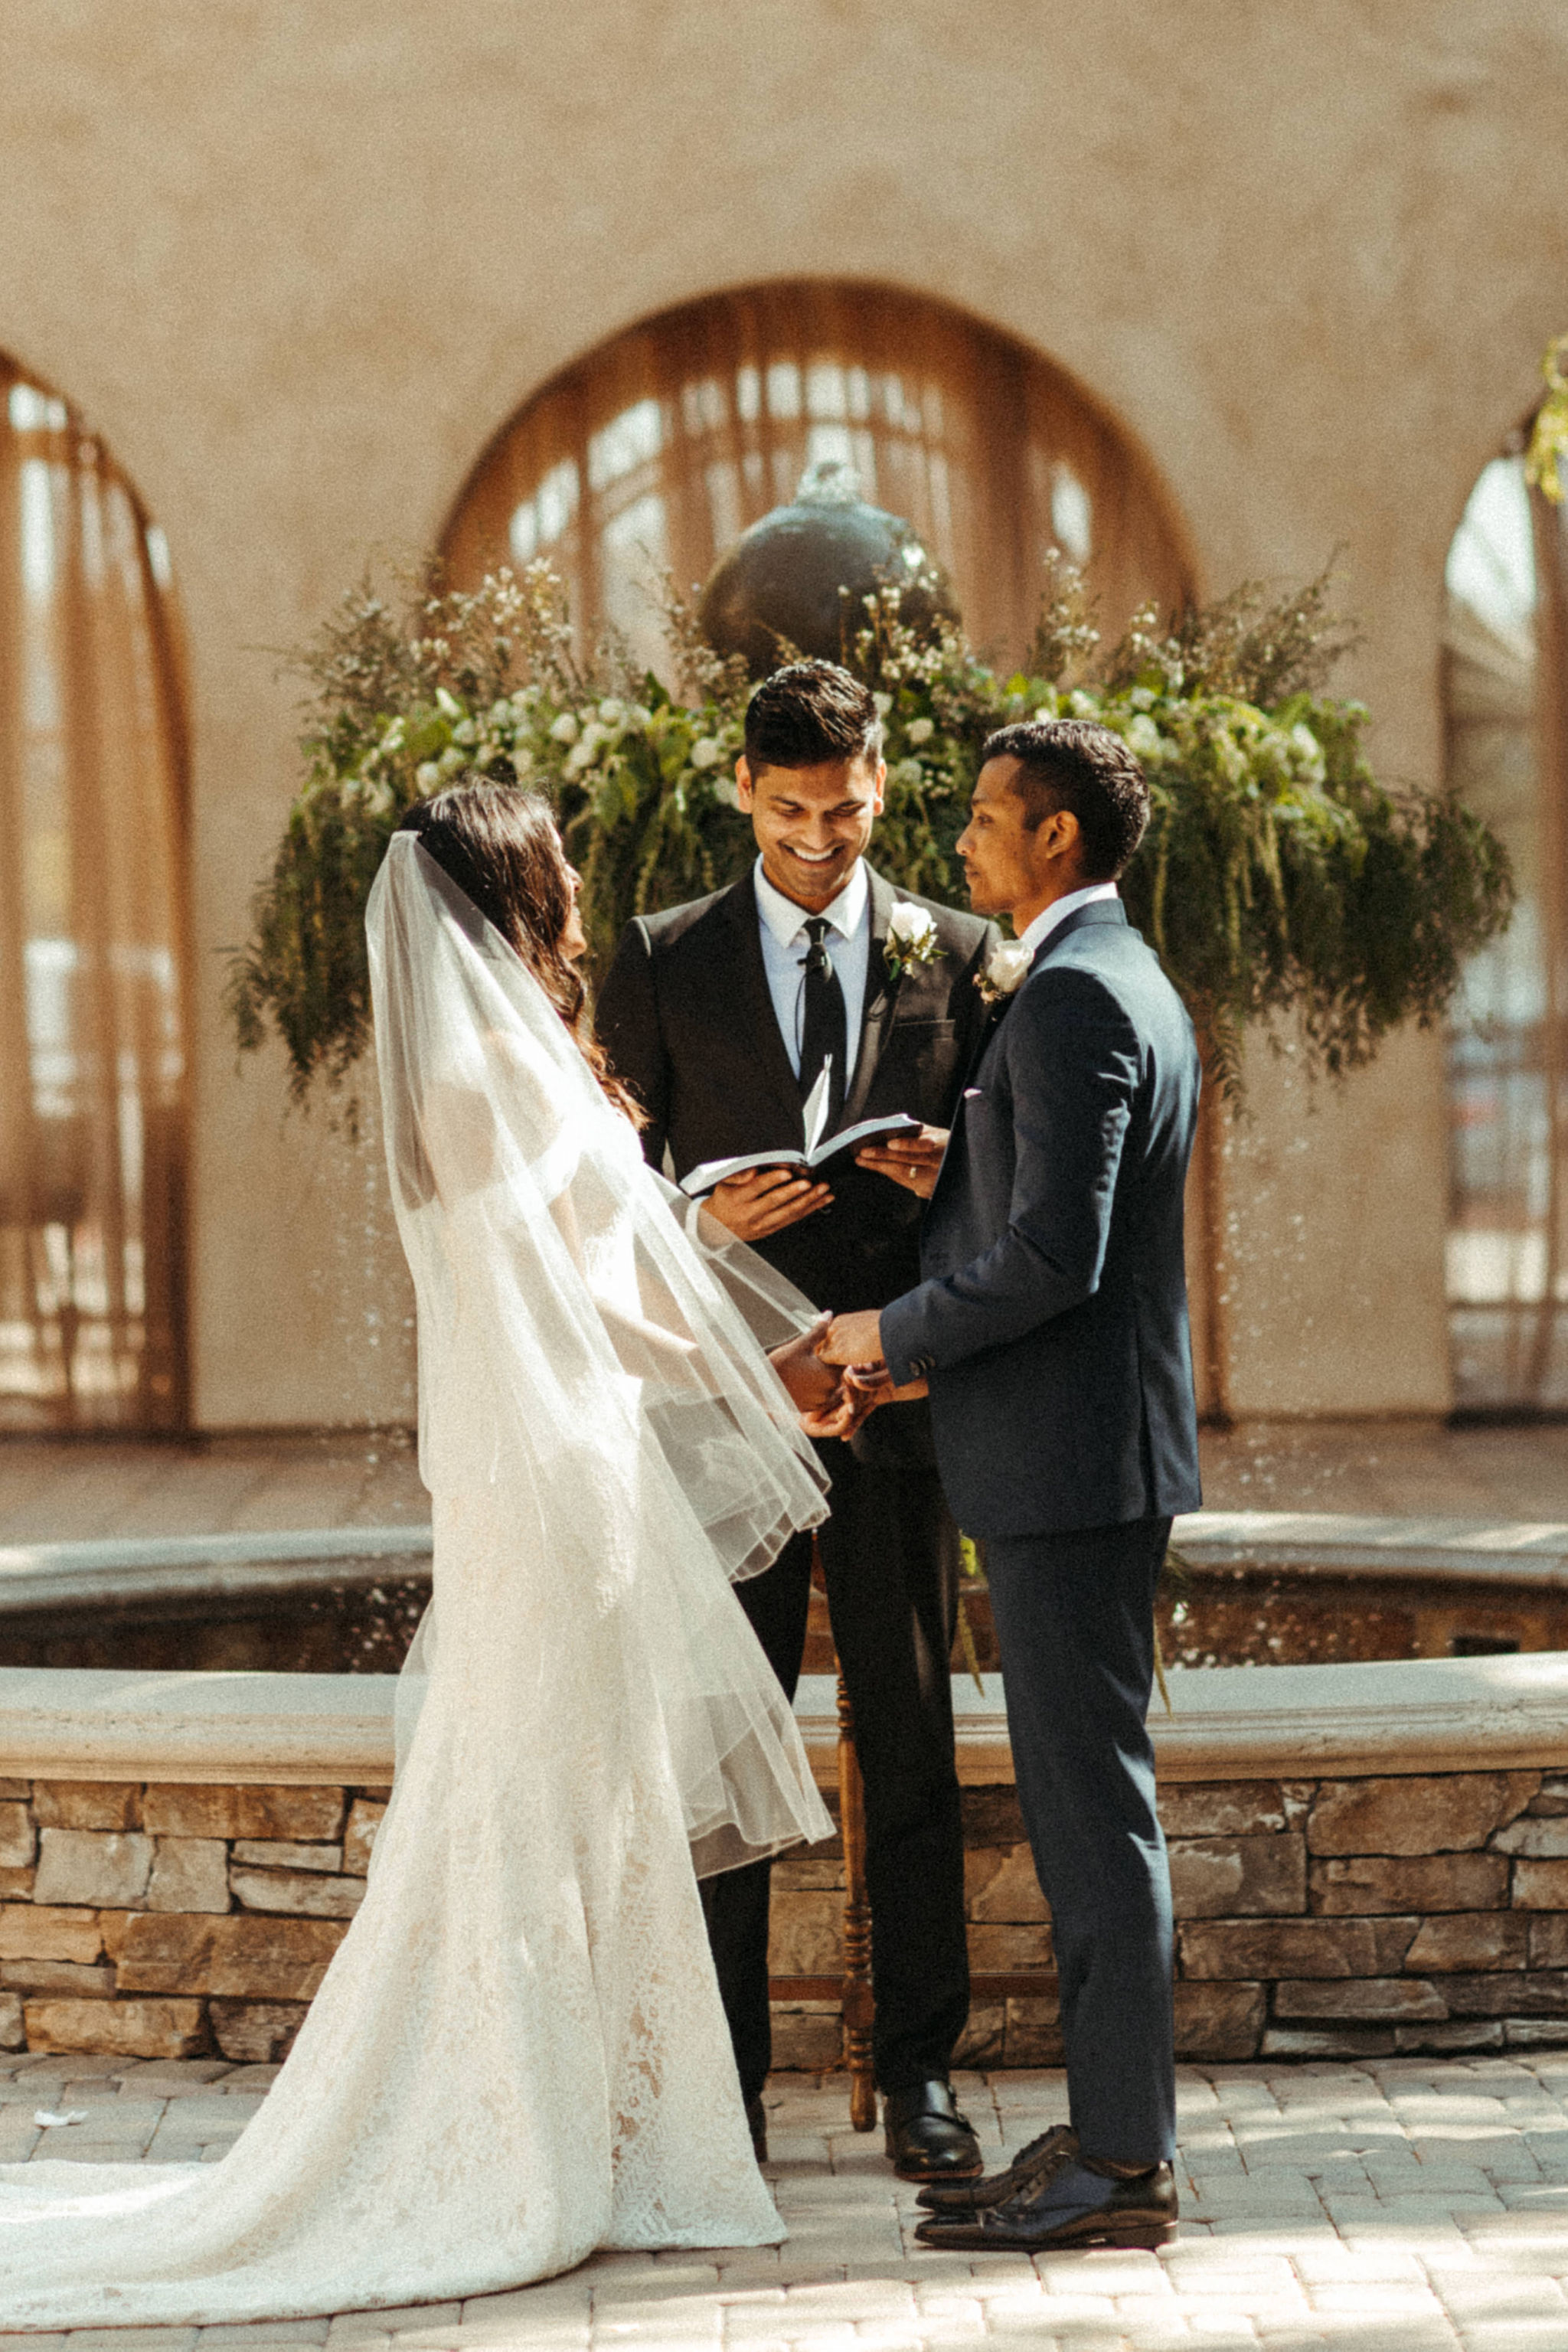 romantic neutral wedding colors at San Juan Capistrano spanish styled wedding venue